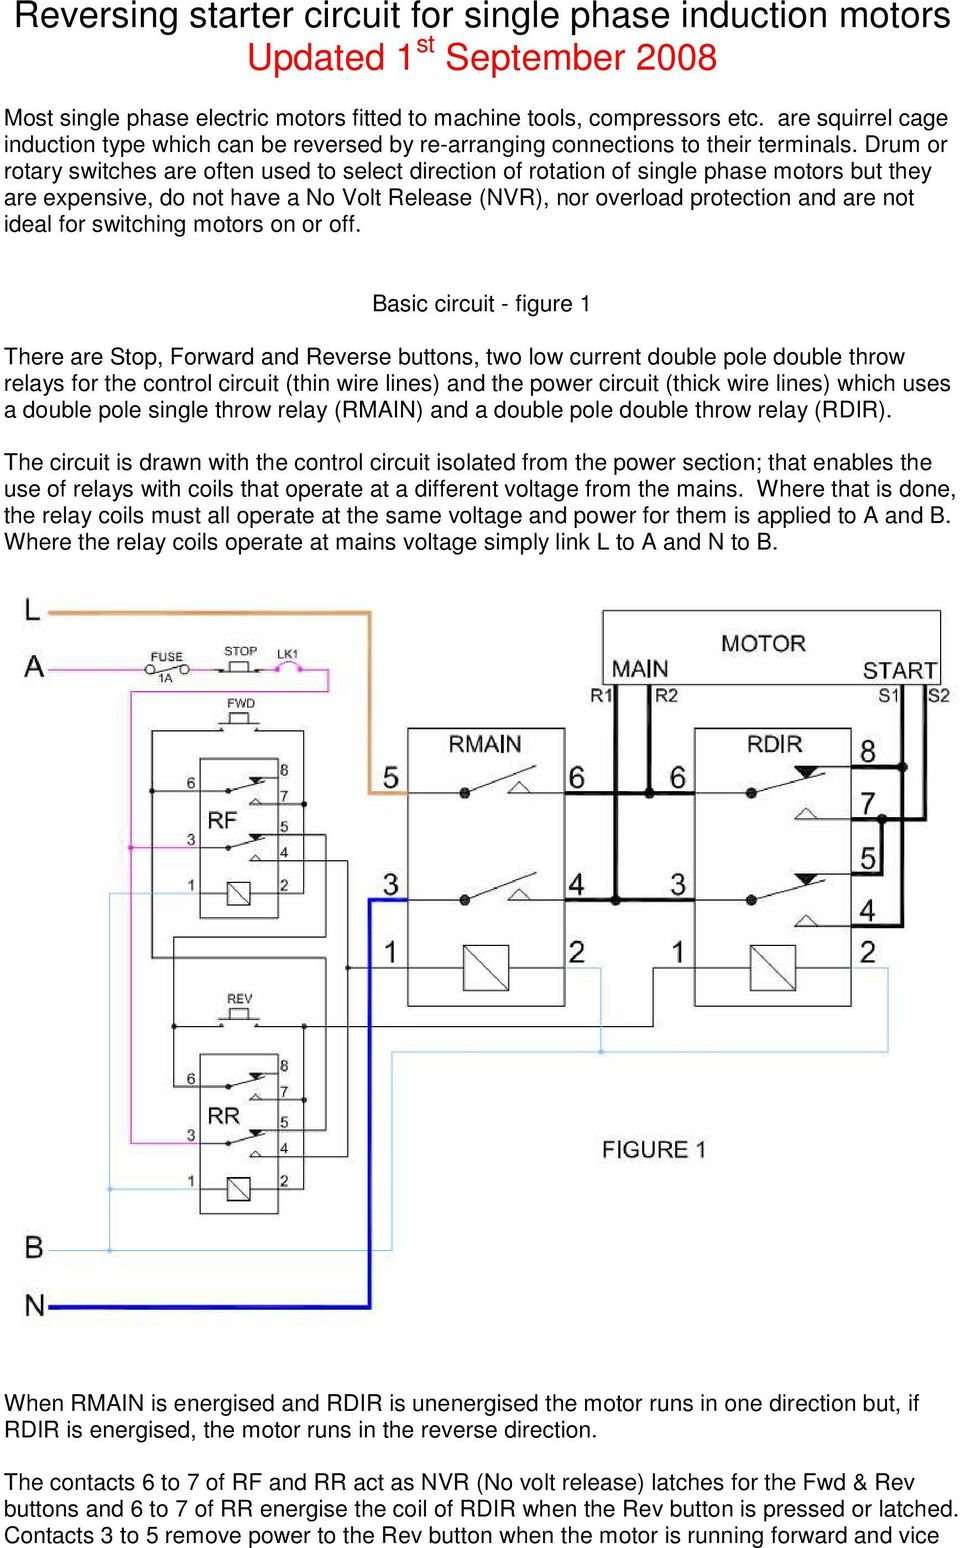 hight resolution of drum or rotary switches are often used to select direction of rotation of single phase motors